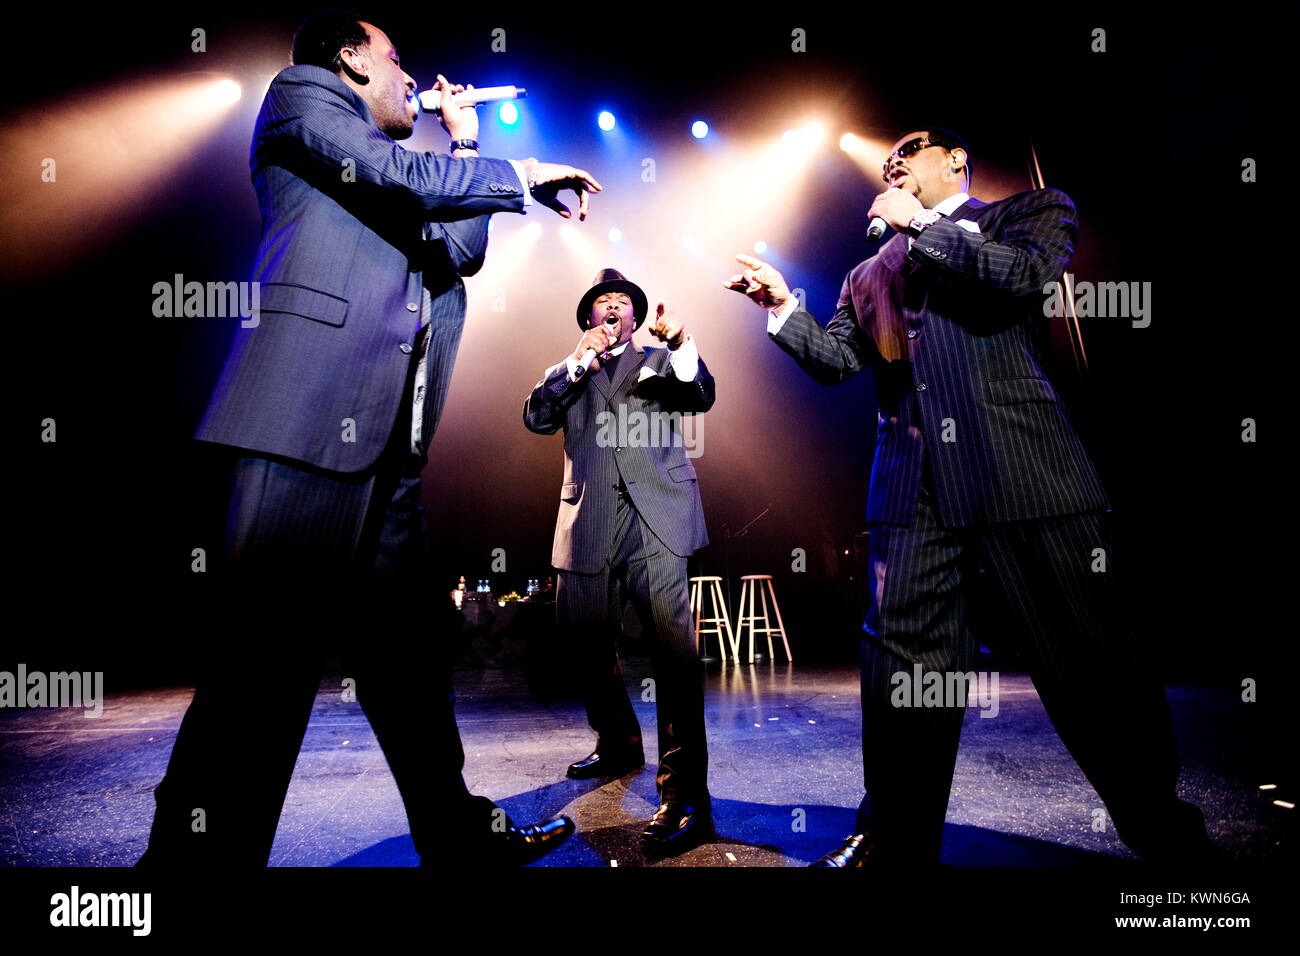 The American R&B and vocal group Boyz II Men performs a live concert at Vega in Copenhagen. Denmark 07/04 2008. - Stock Image